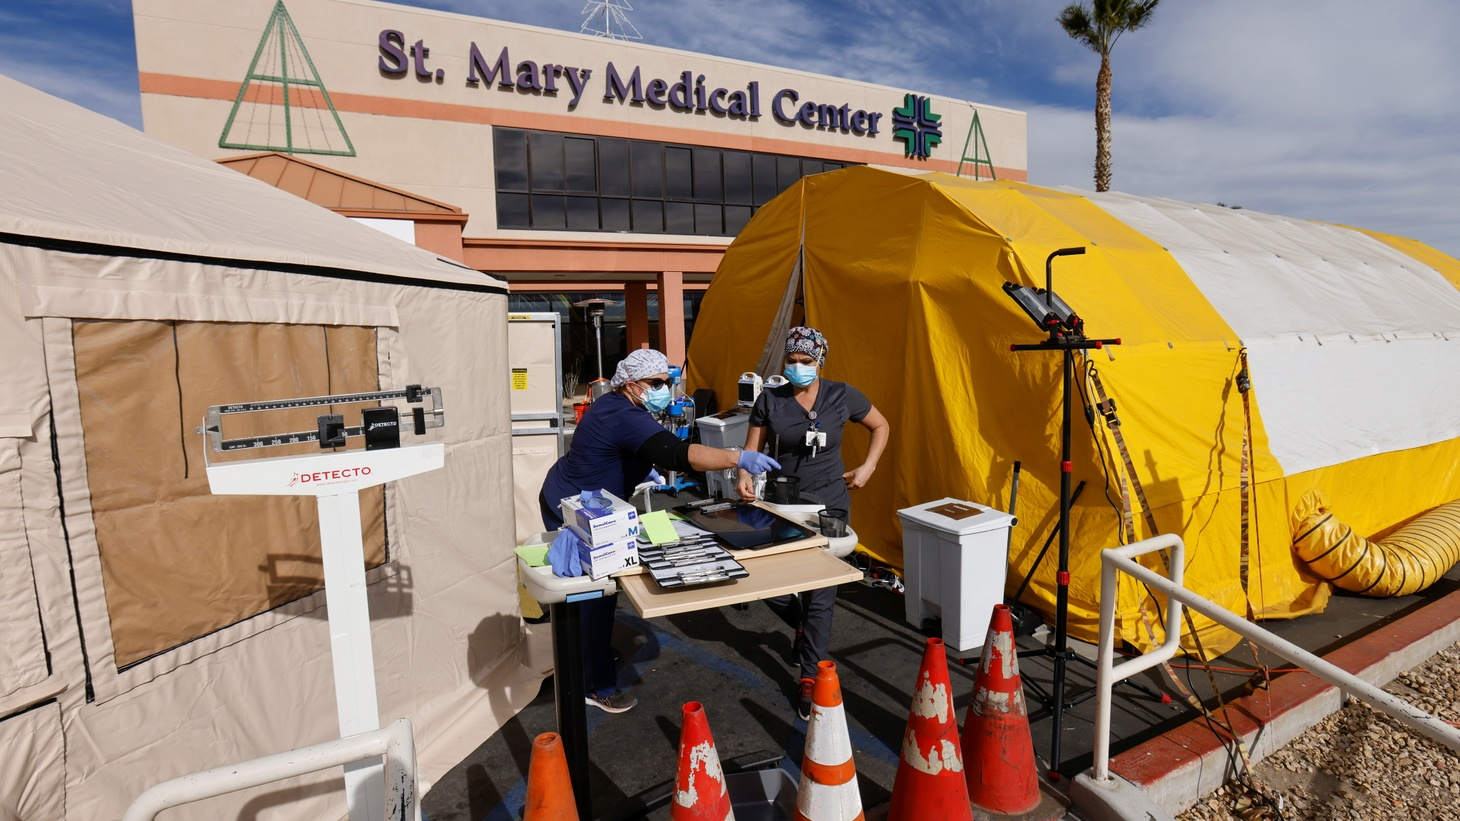 ER tech Brenda de la Cruz (R) and registered nurse Janet Hays work outside St. Mary Medical Center in the triage tents during the outbreak of COVID-19 in Apple Valley, California, U.S., December 8, 2020.